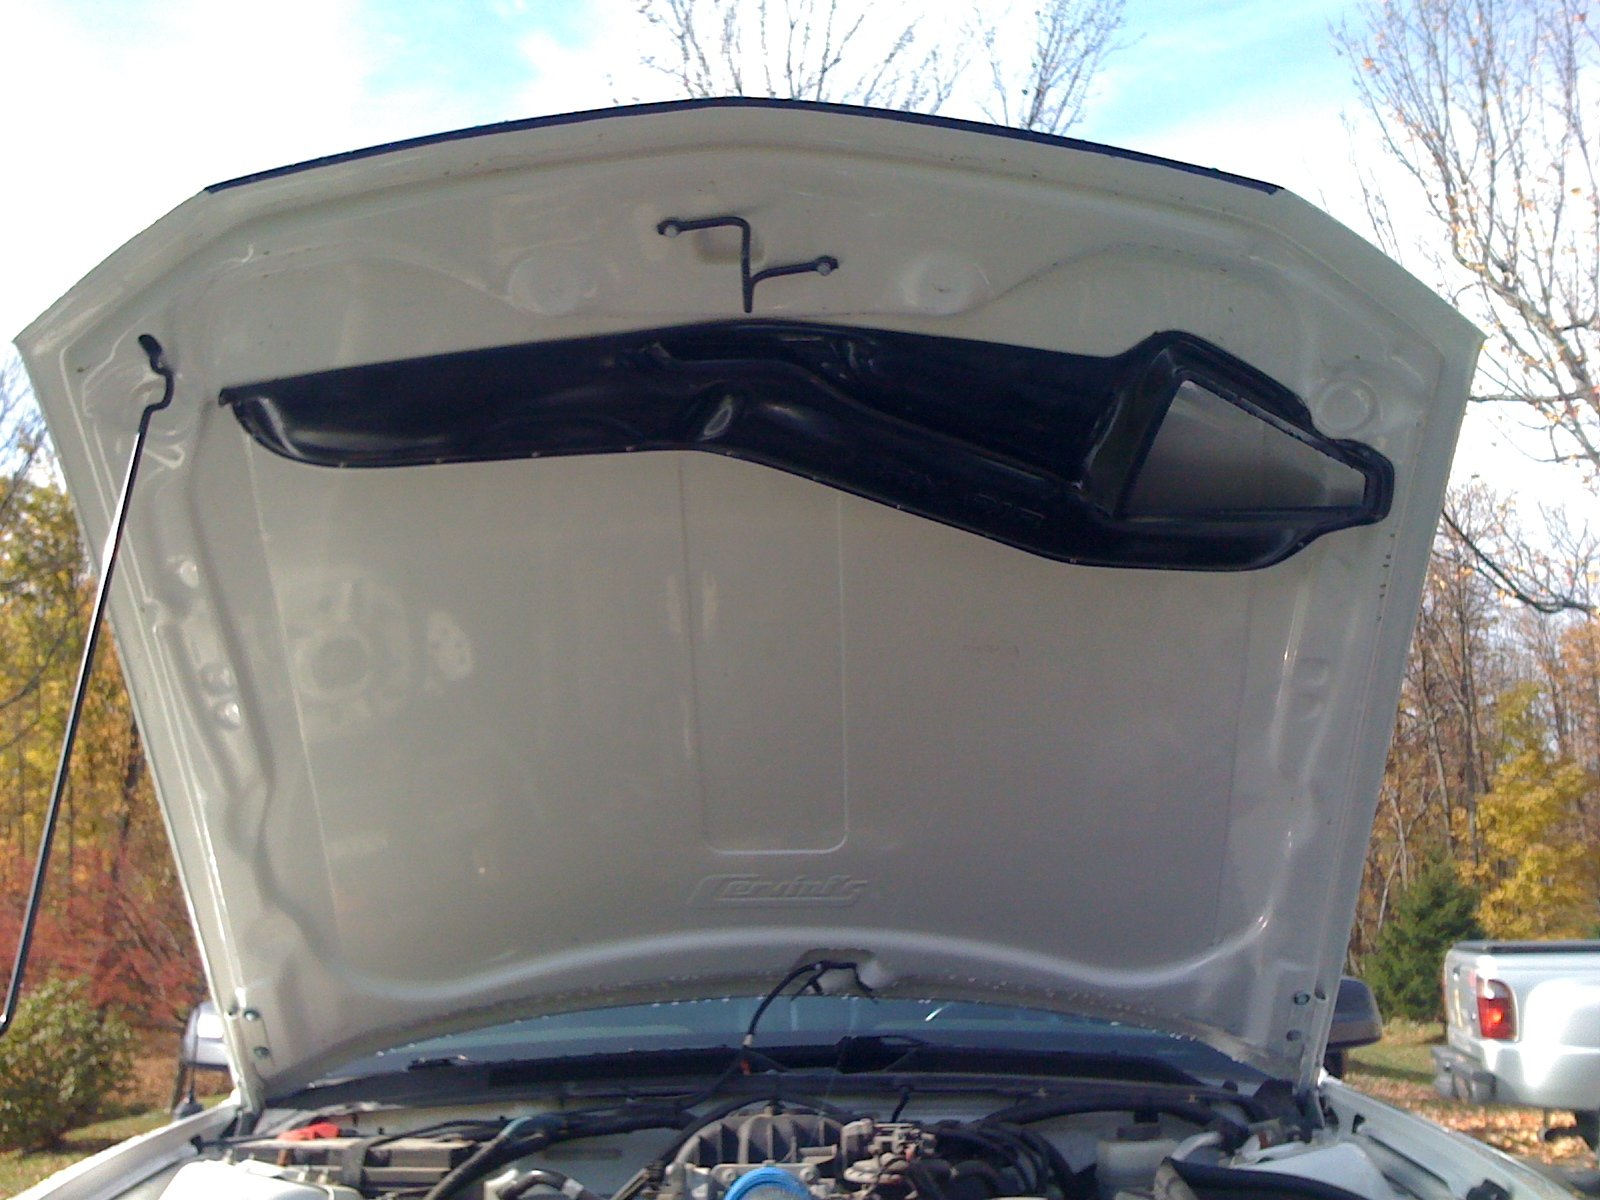 2005 Ford Mustang V6 >> Custom Ram Air Duct for Cervini Concept Hood - Page 2 ...